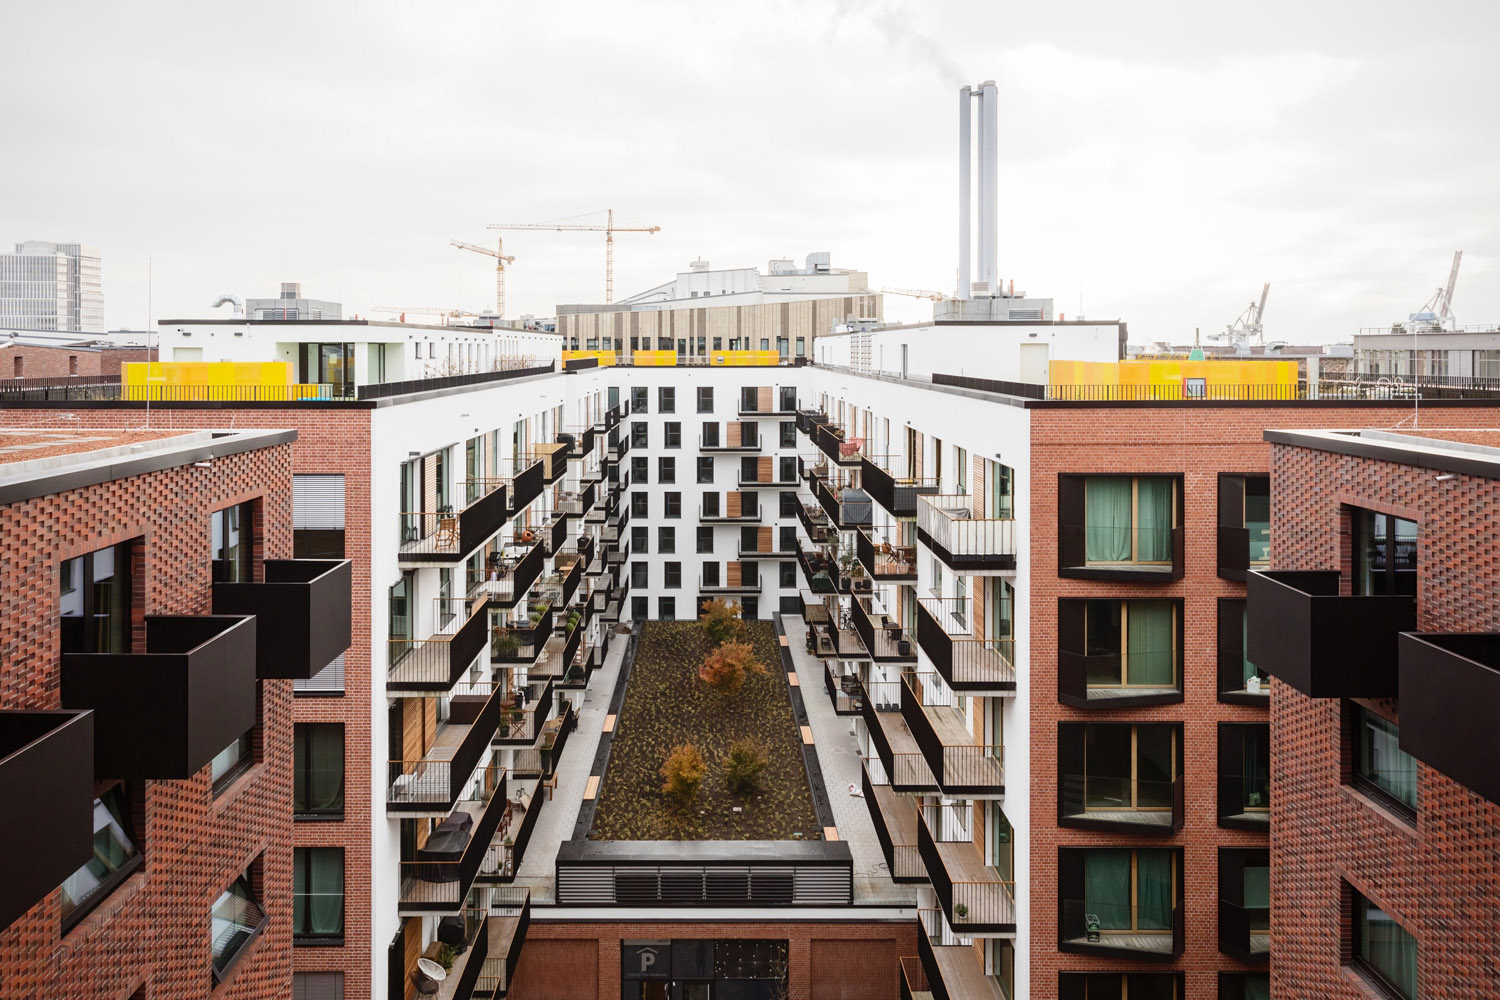 The inner courtyard and roof gardens are extensively planted with trees Marcus Bredt